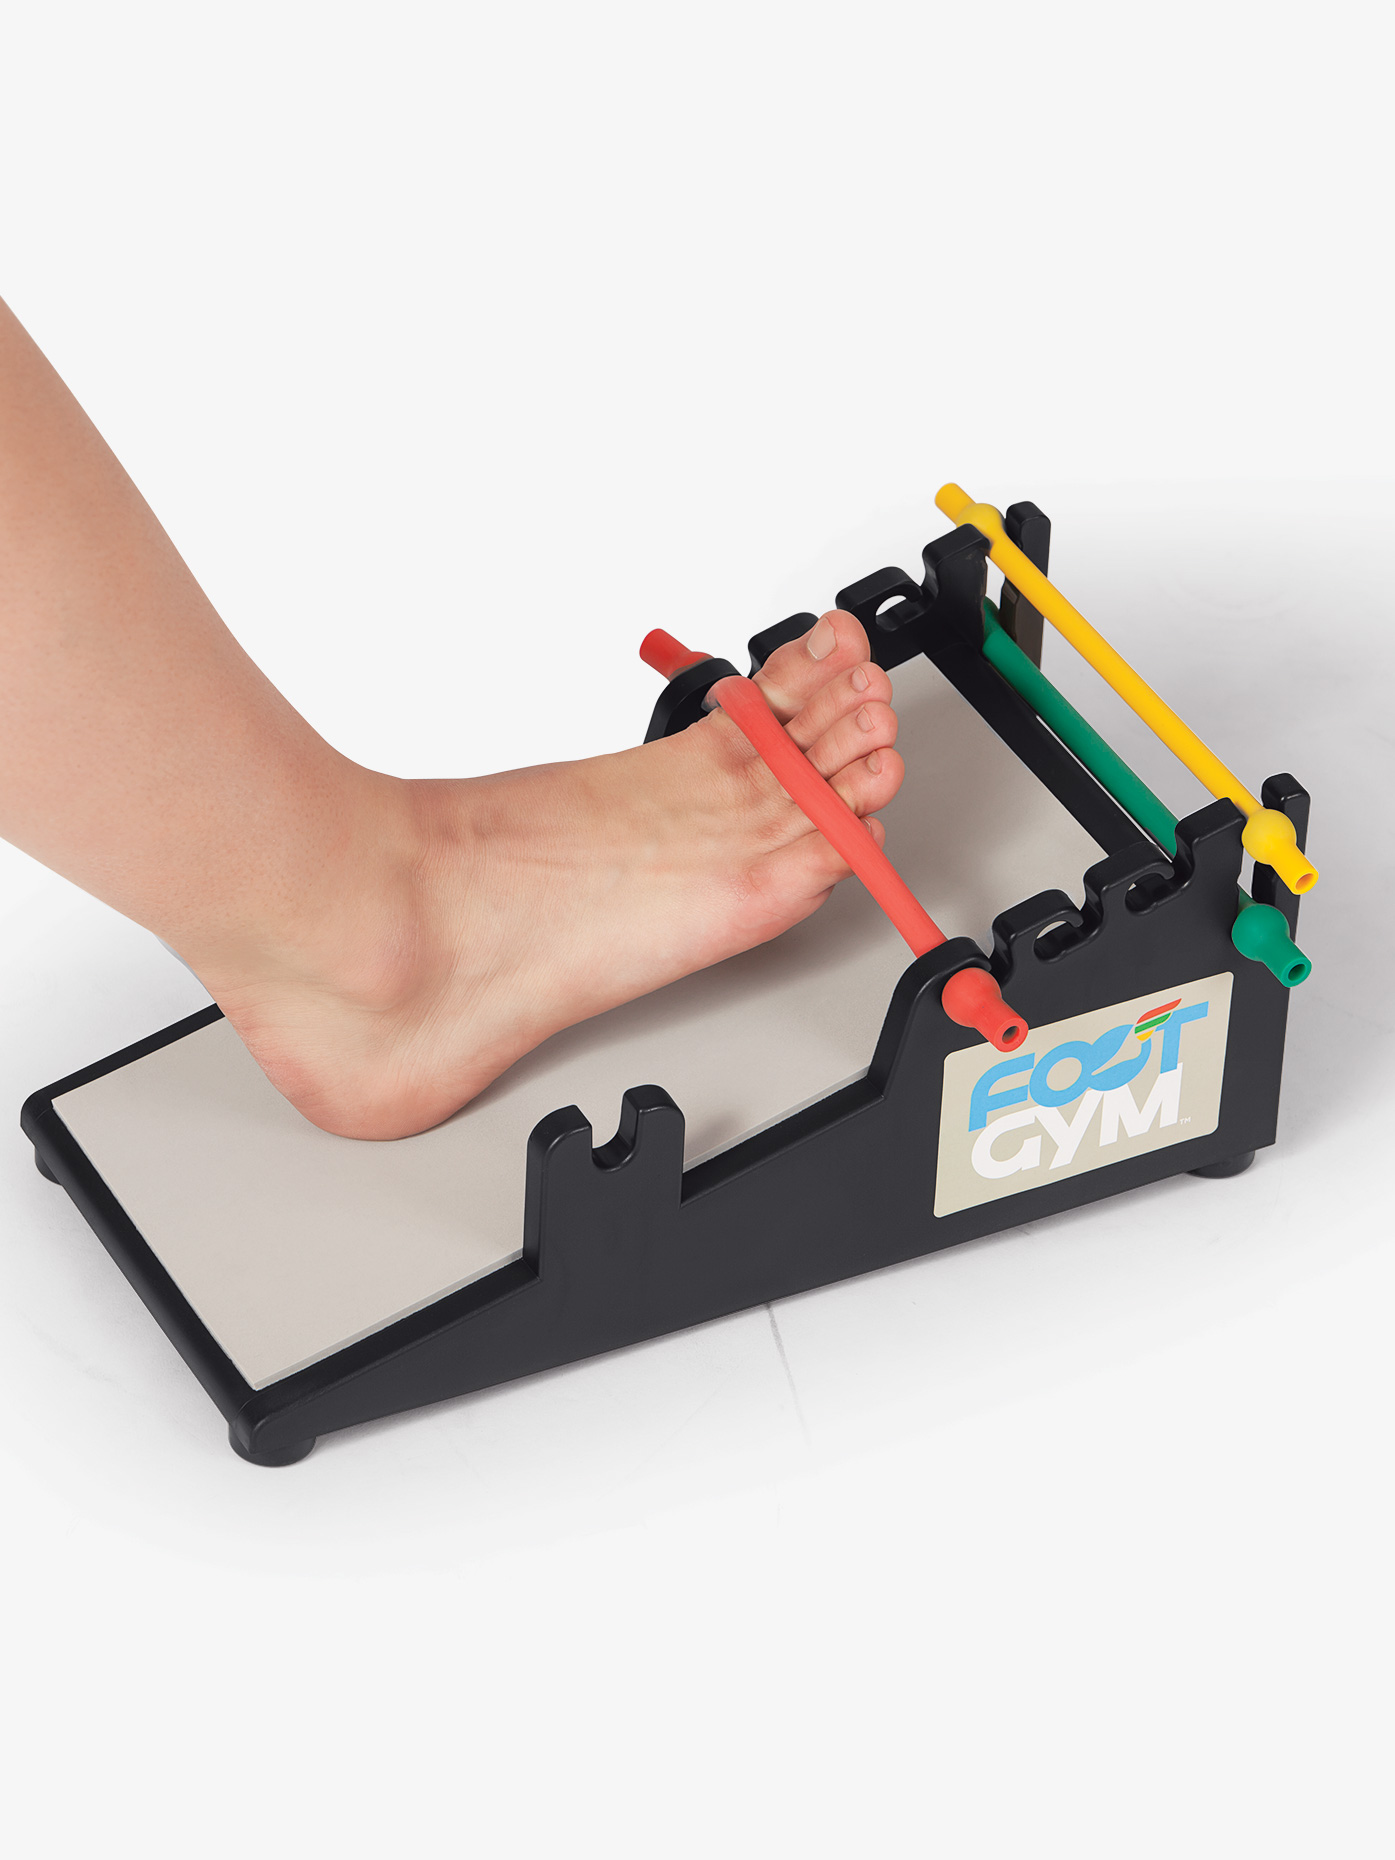 FootGym 7-in-1 Foot Gym FOOTGYM